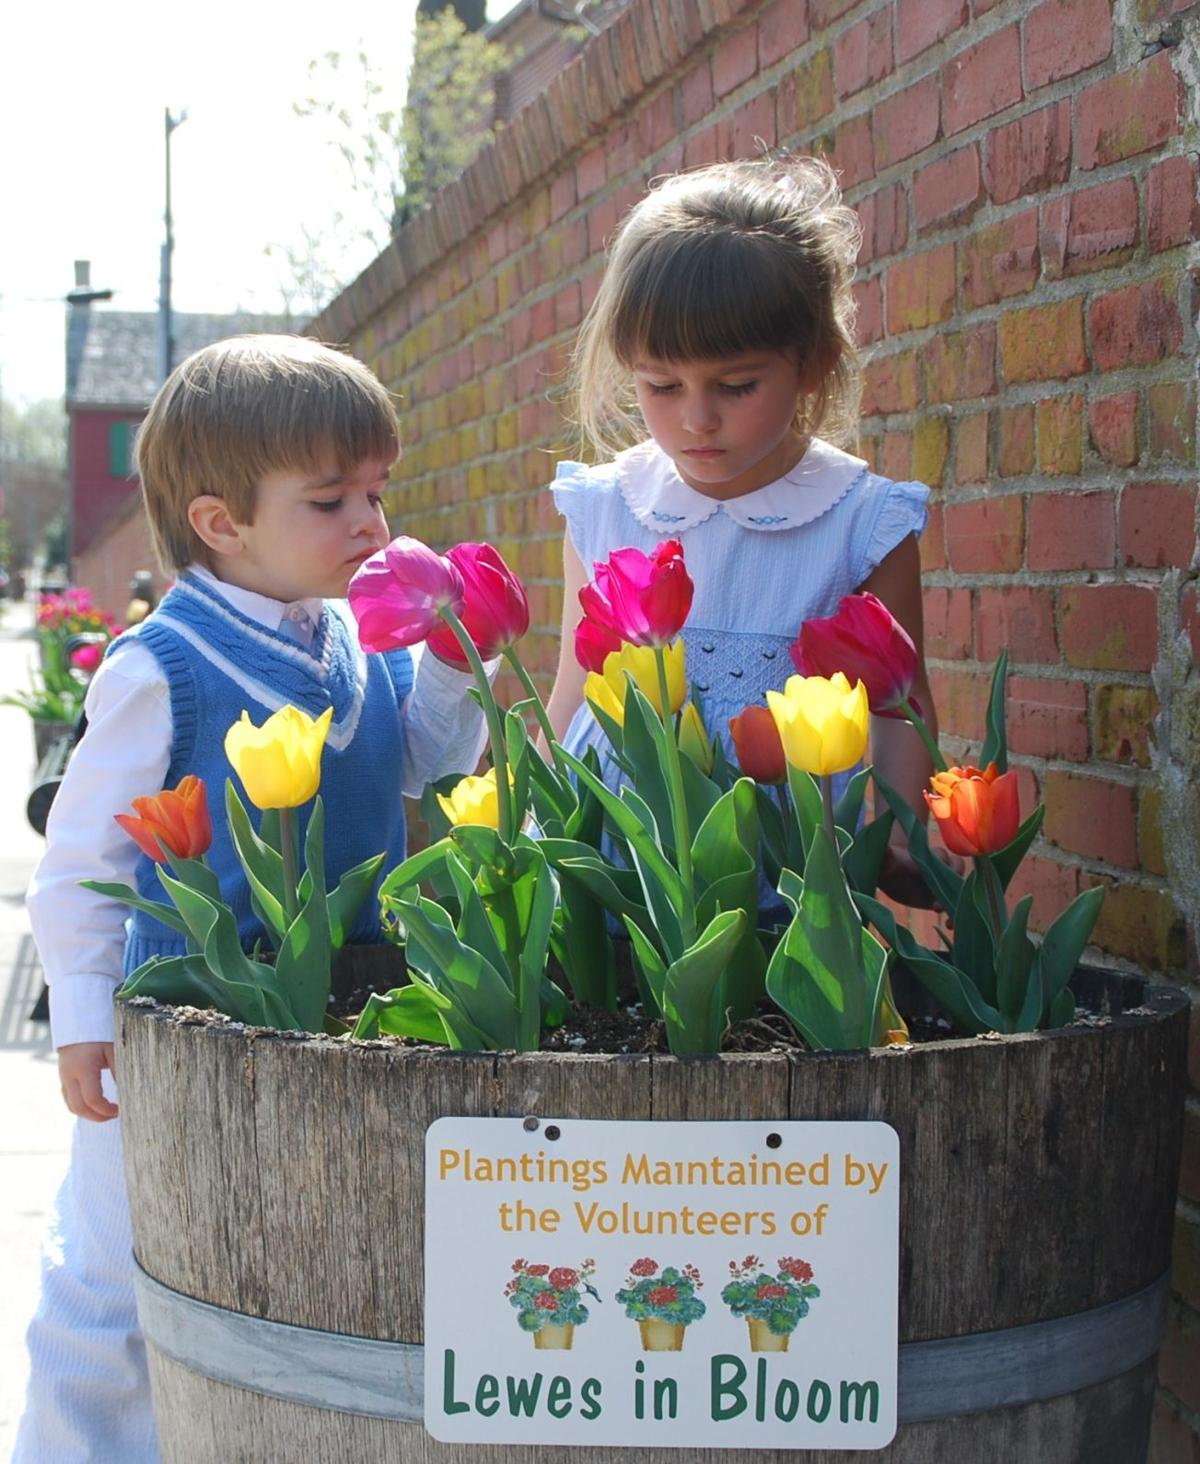 Spring festivals draw visitors to Lewes